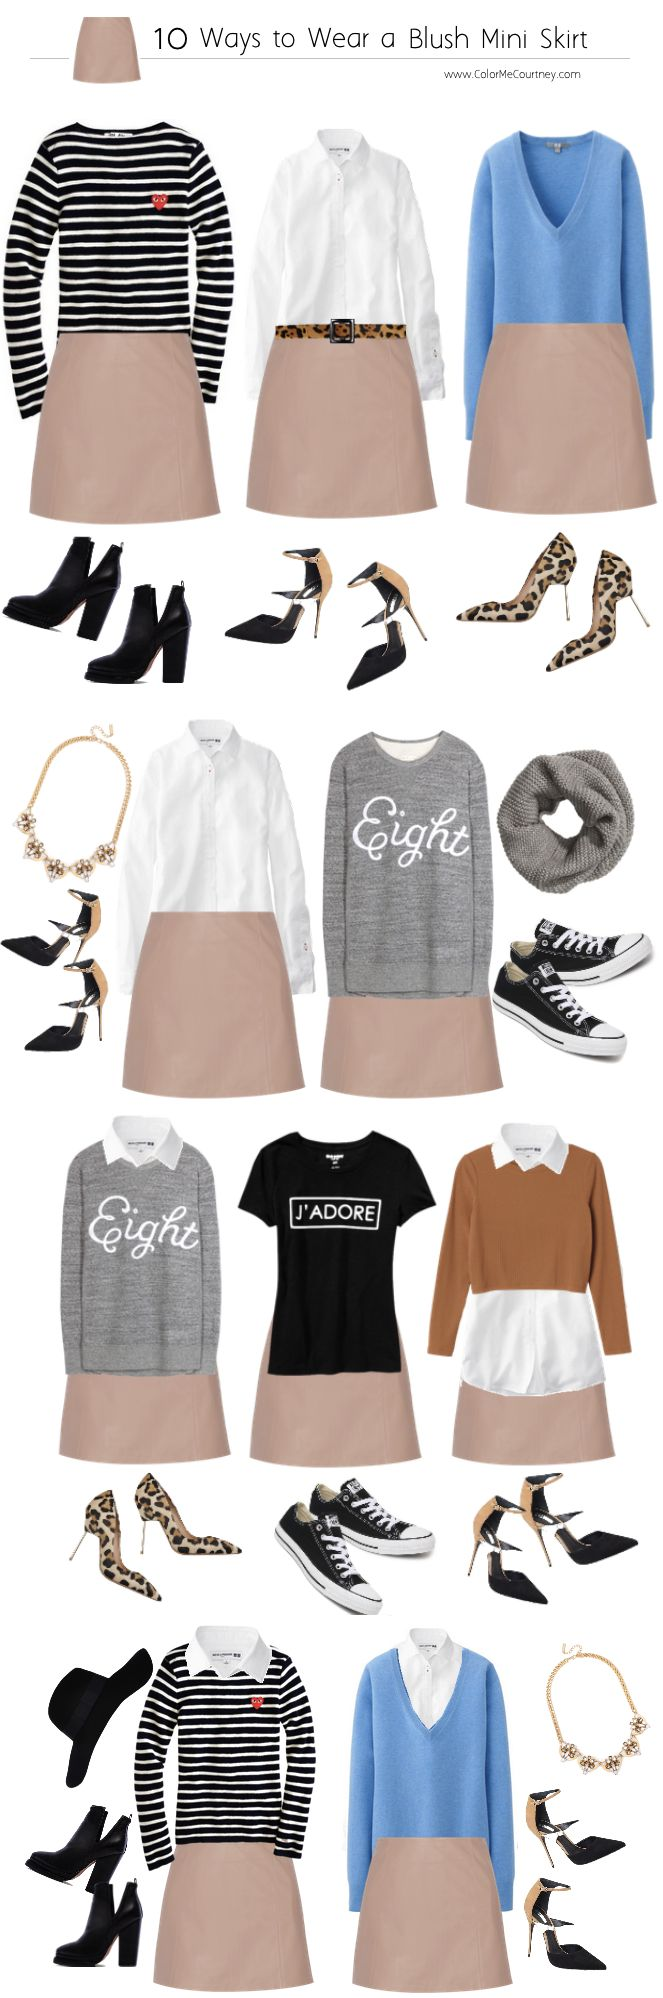 10 ways to wear a blush mini skirt - I think these could work with my tan pleated silk wrap skirt